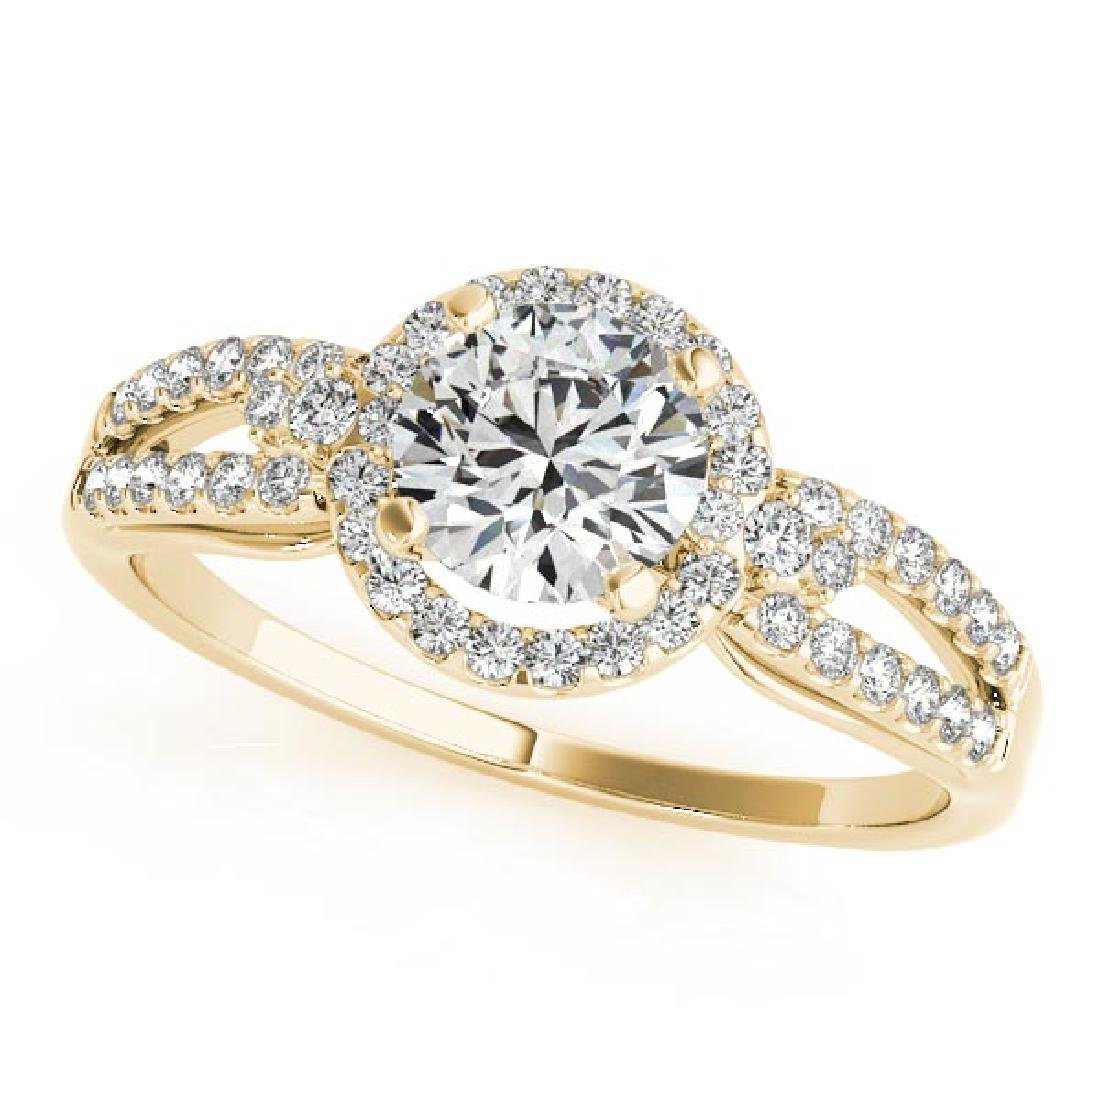 CERTIFIED 18K YELLOW GOLD 1.00 CT G-H/VS-SI1 DIAMOND HA